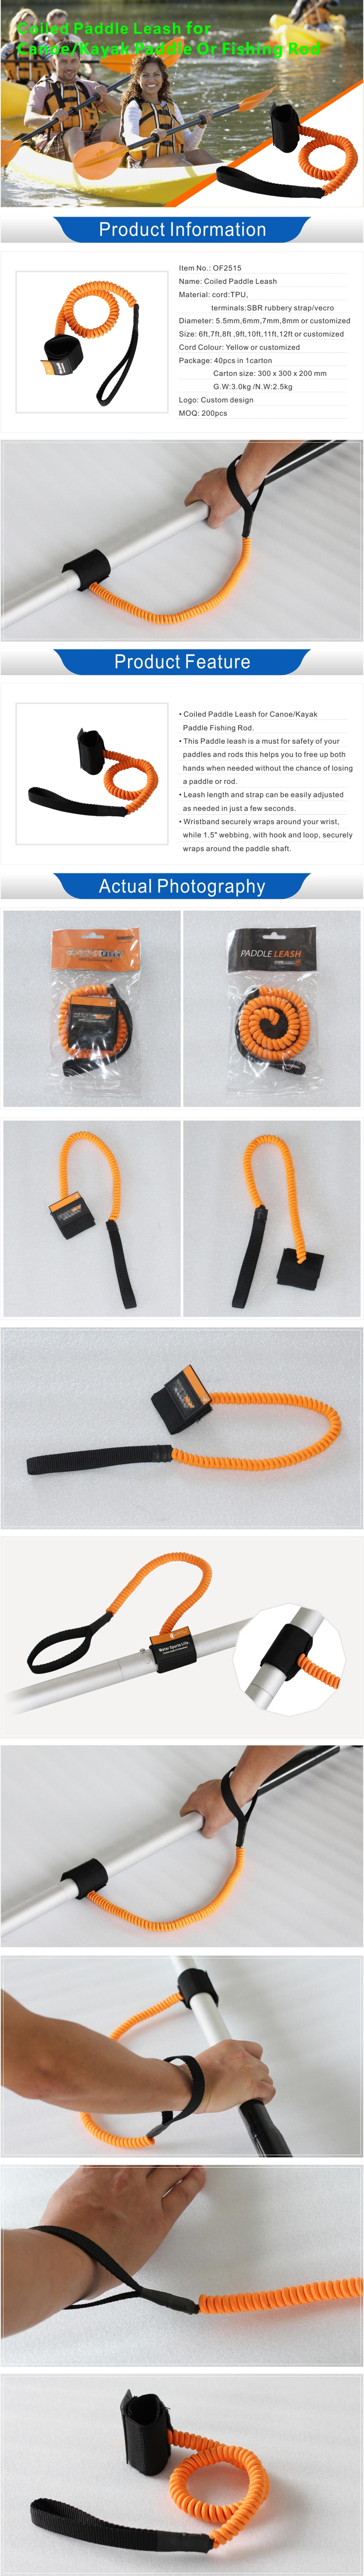 New Design Elastic Kayak Canoe Paddle Leash Safety Boat Fishing Rod Pole  Coiled Lanyard Cord Tie Rope - Buy Wholesale High Quality,Coiled Paddle